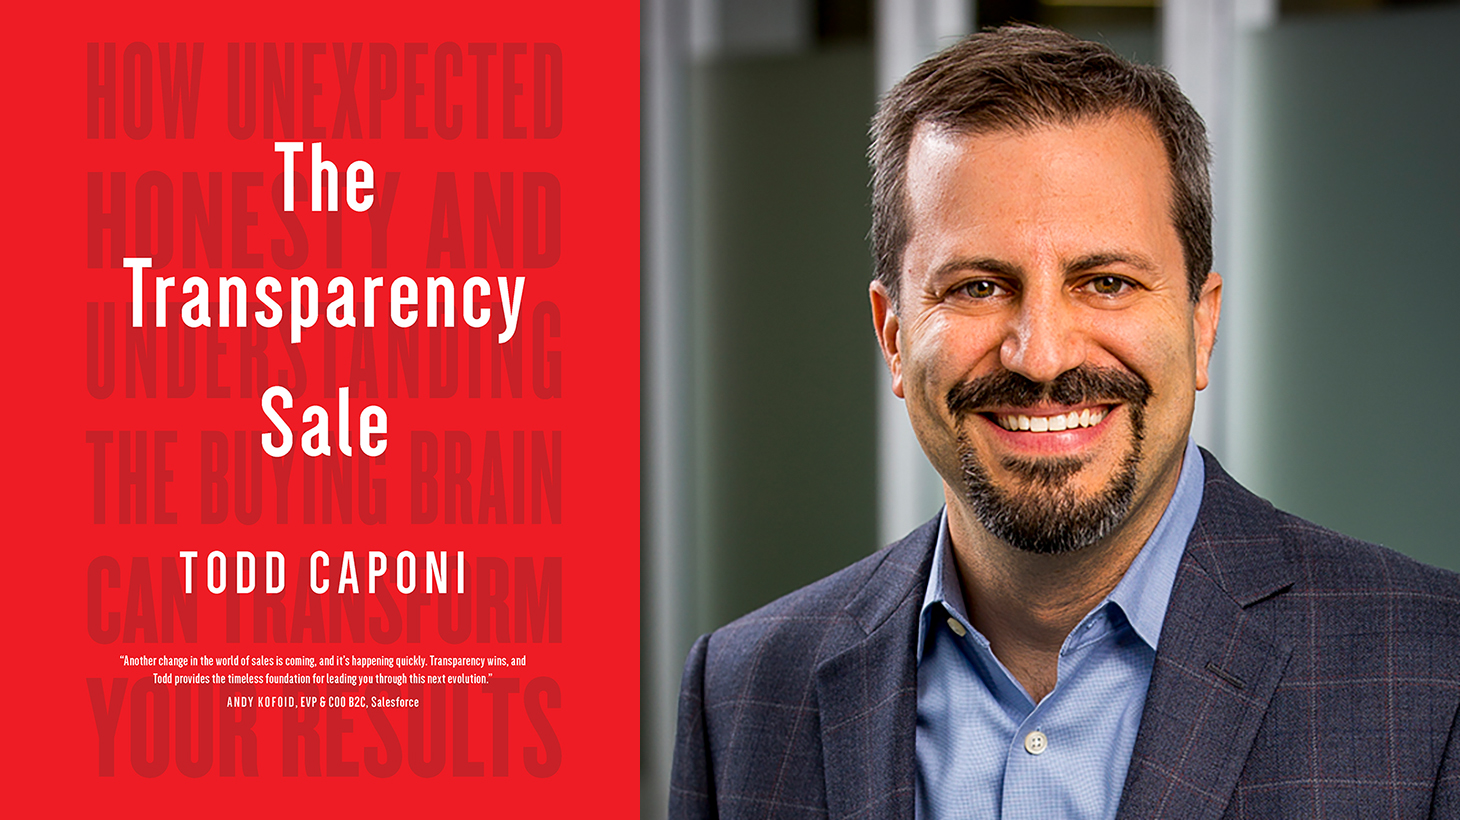 The Transparency Sale and Todd Caponi